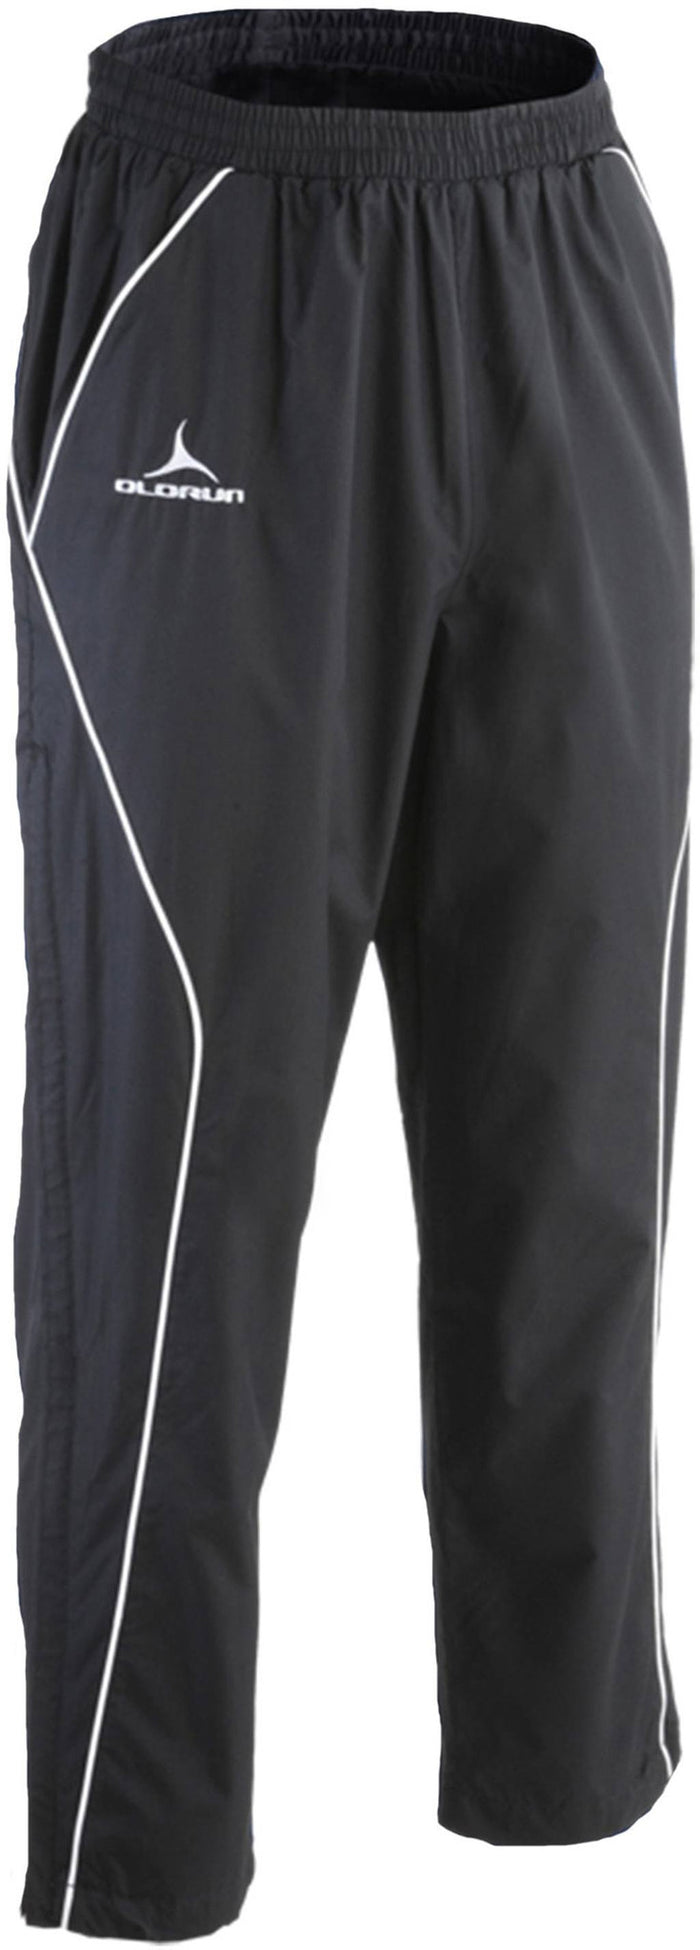 Olorun Kid's Iconic Training Pants Black/White